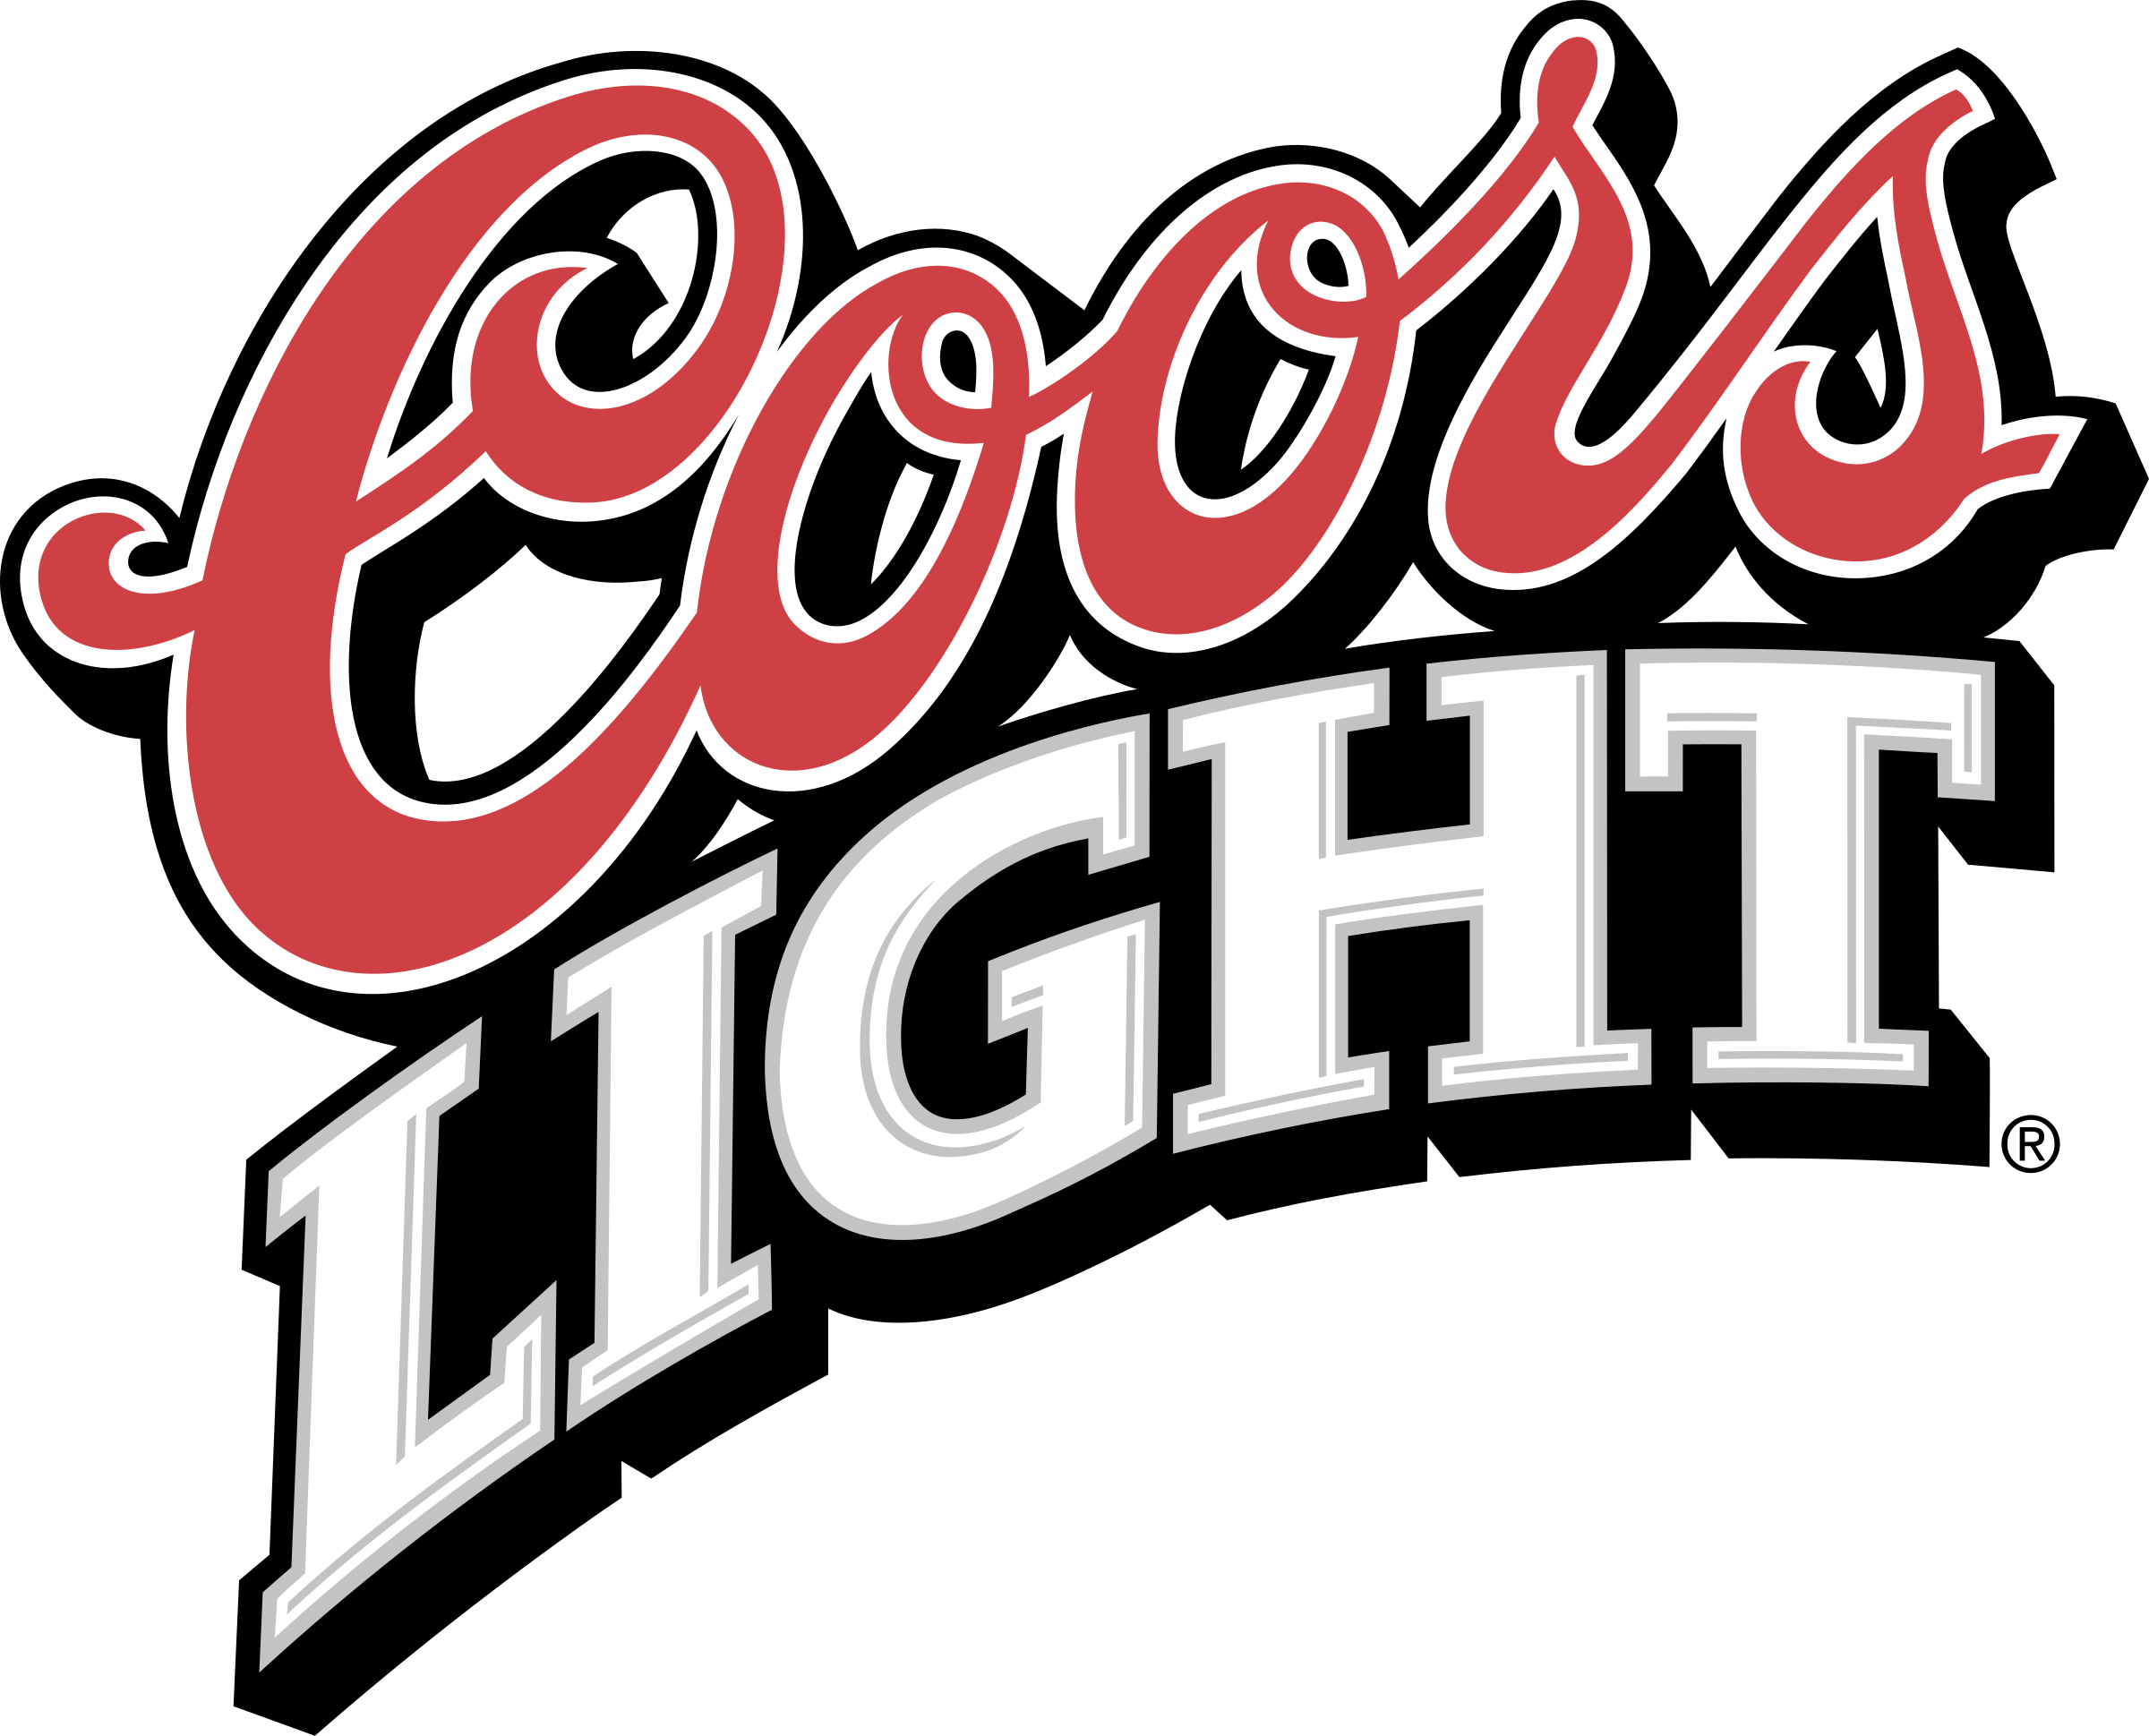 Coors Logo - Coors Light Logo PNG Transparent & SVG Vector - Freebie Supply